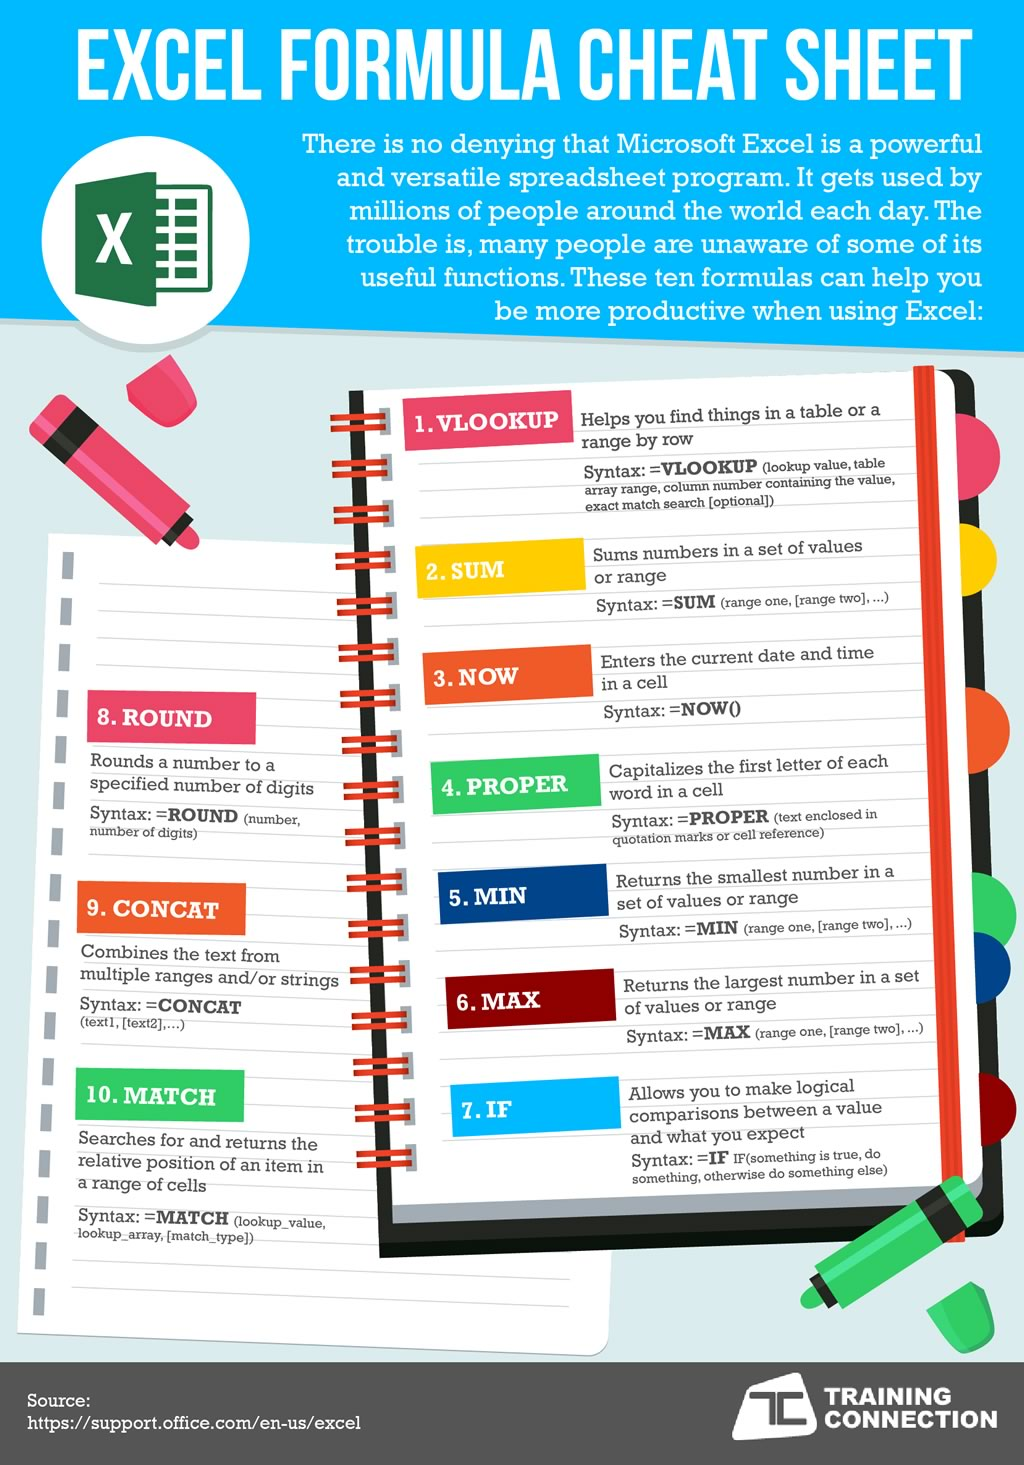 formulas for excel 2010 cheat sheet